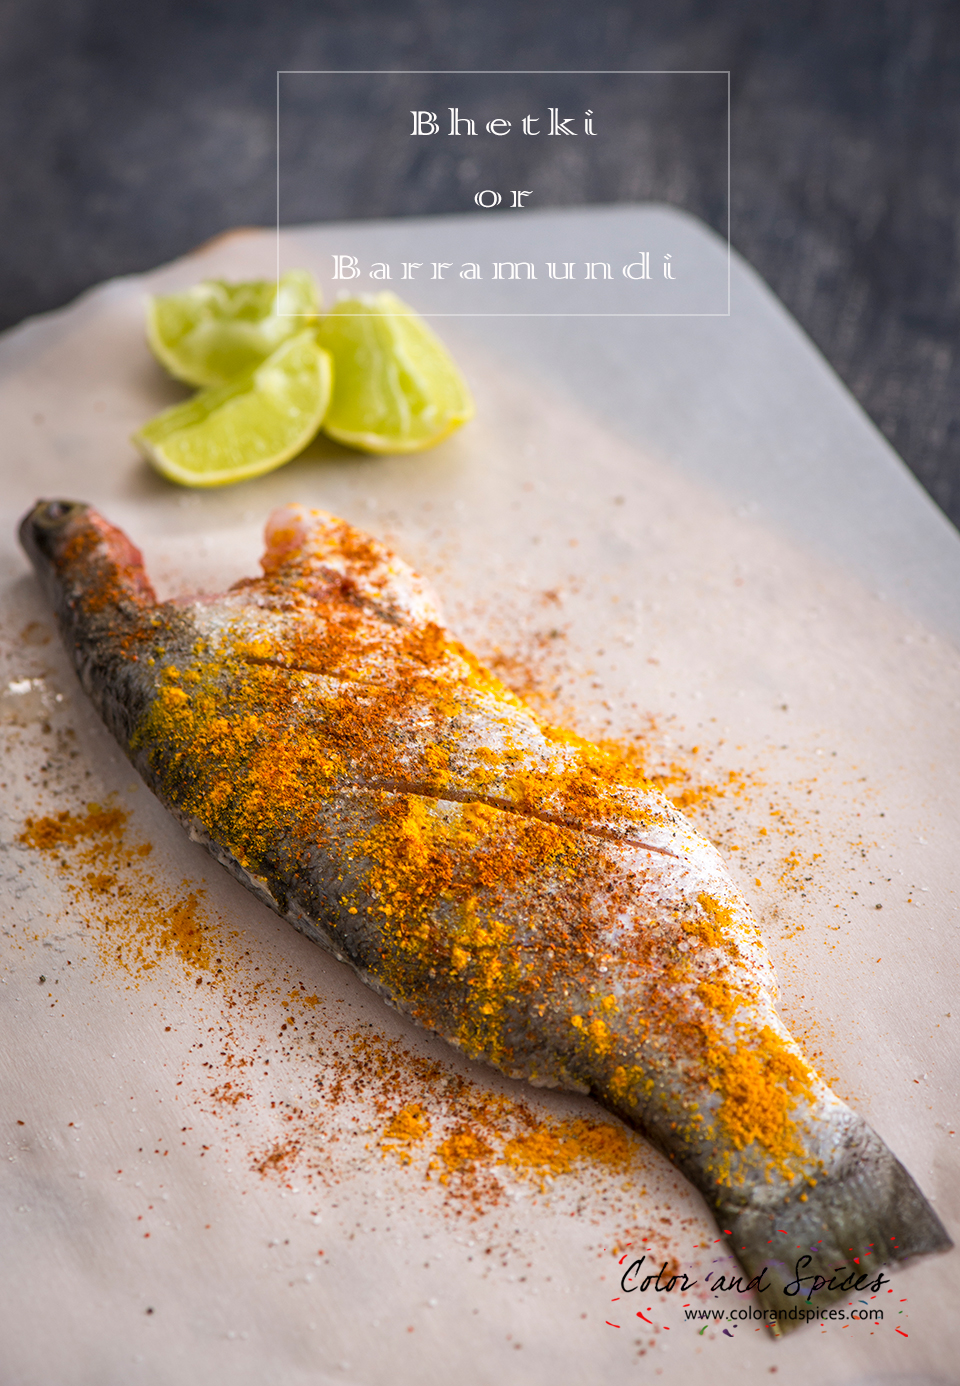 Color and spices tandoori spiced grilled whole fish for Grilled fish seasoning